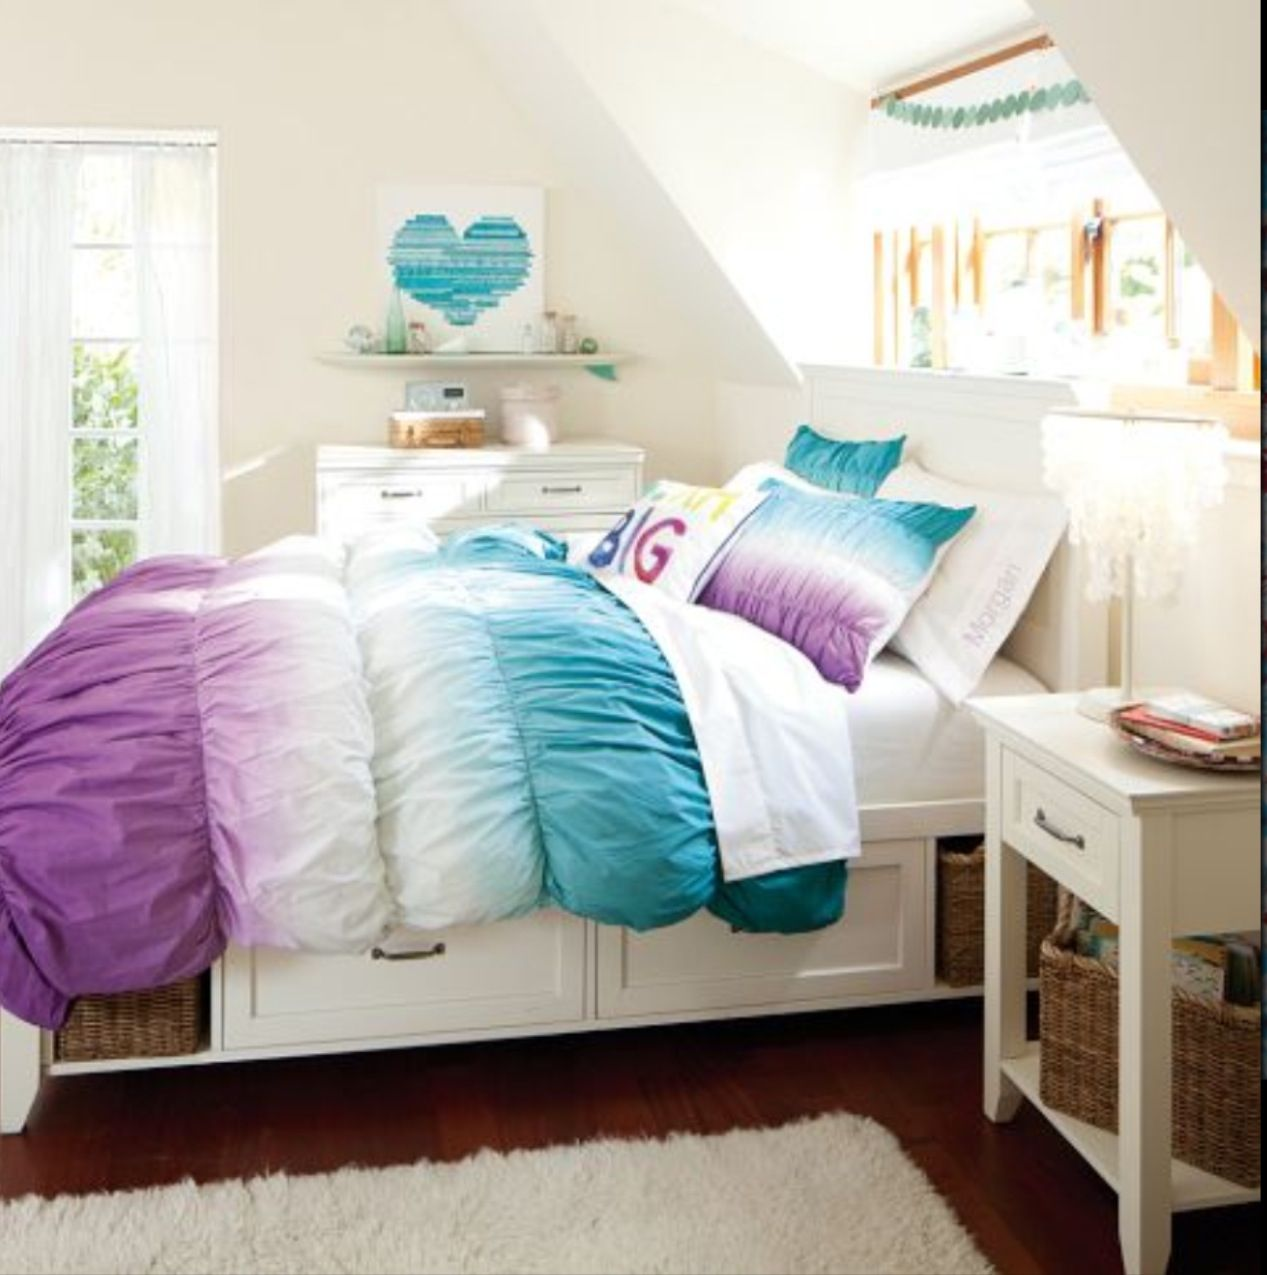 Cute, with tie dye bedding and beach decor.